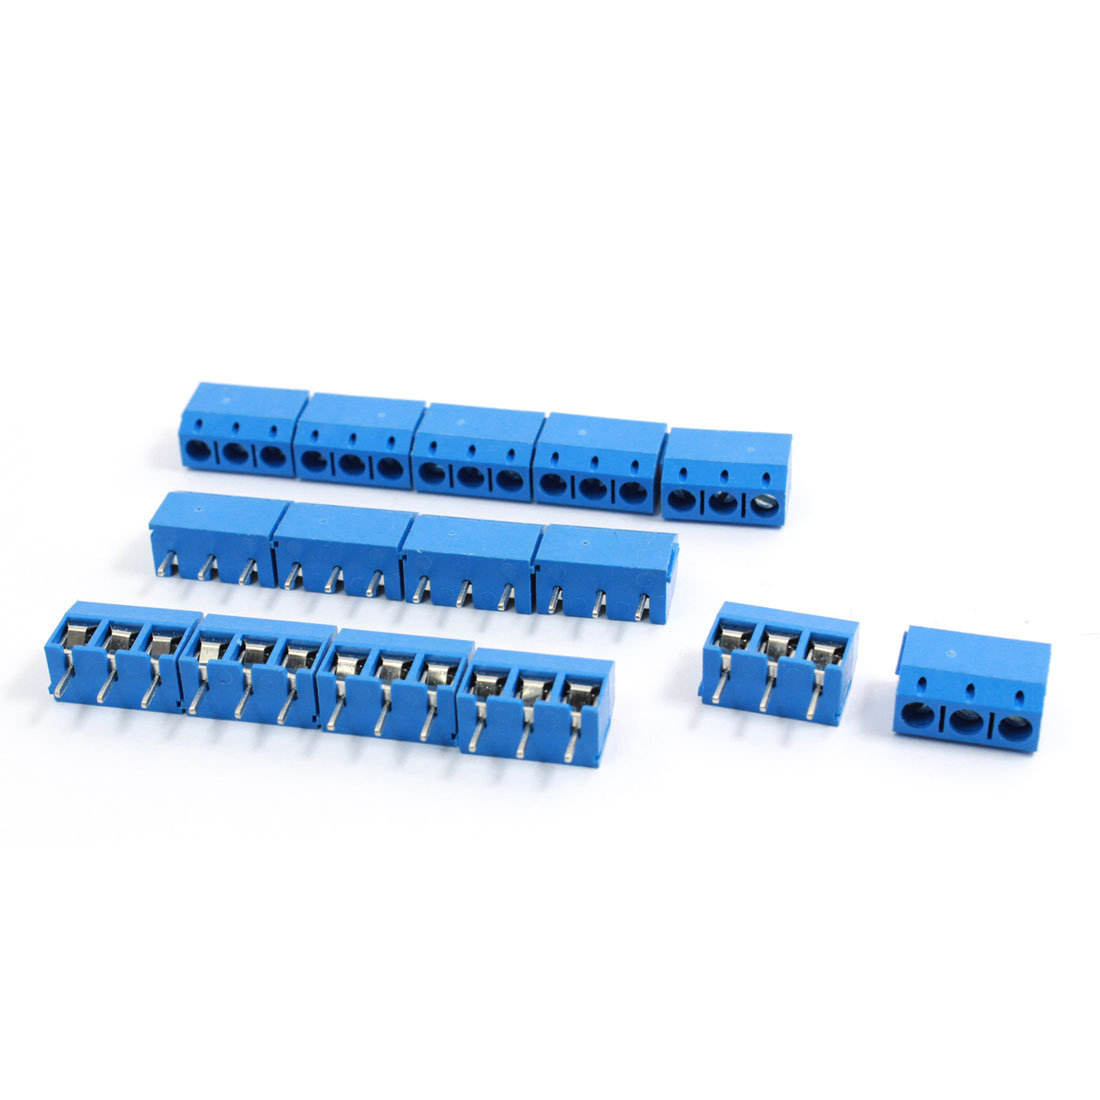 15 Pcs 301-3P 5mm Pitch 3 Pin AC 300V 10A Blue Screw Terminal Block Connector